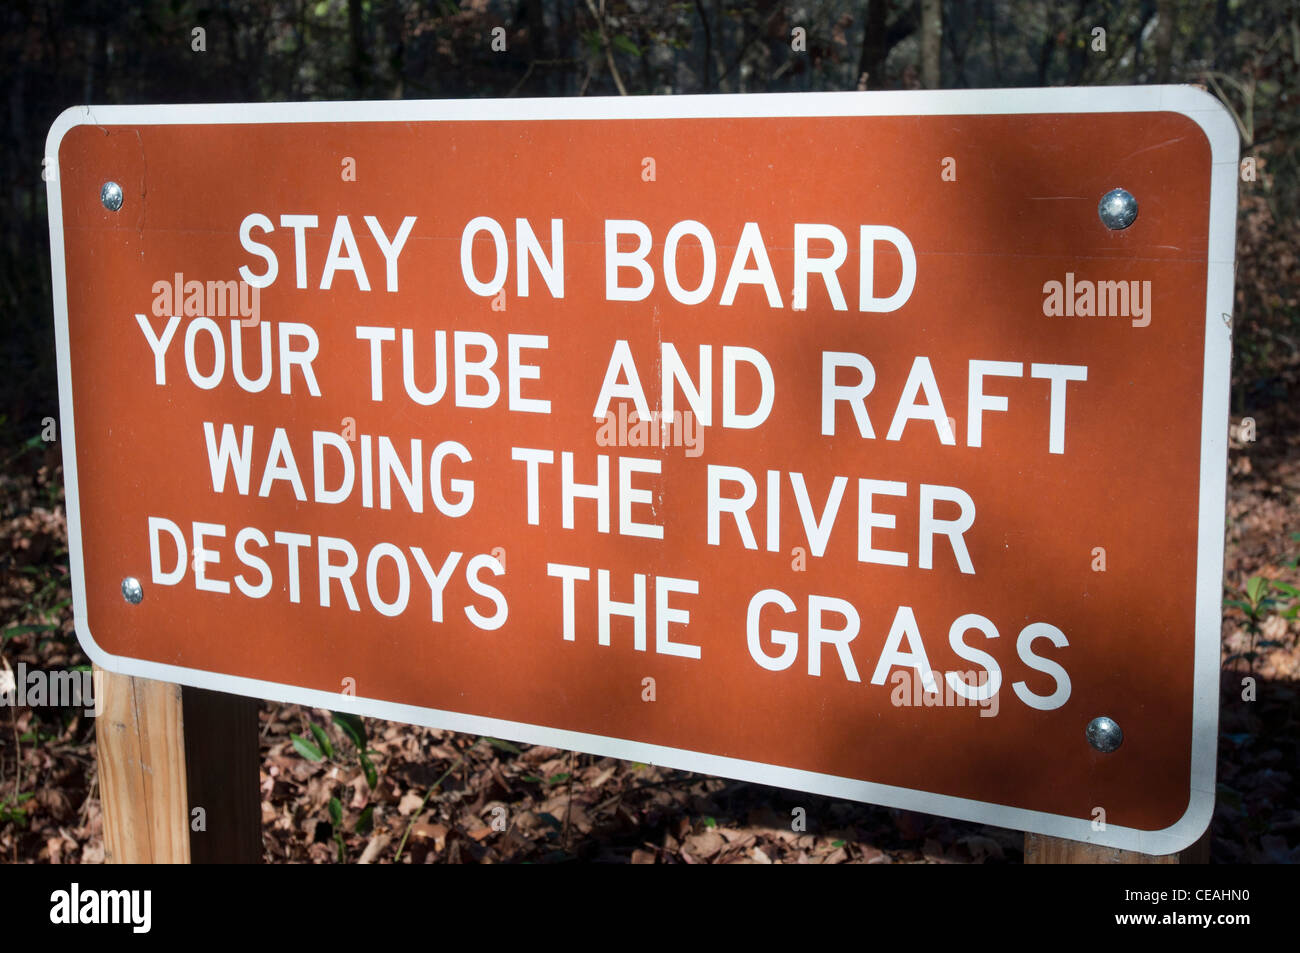 Stay on board your tube and raft. Wading the river destroys the grass. sign, Ichetucknee Springs State Park, Florida, - Stock Image